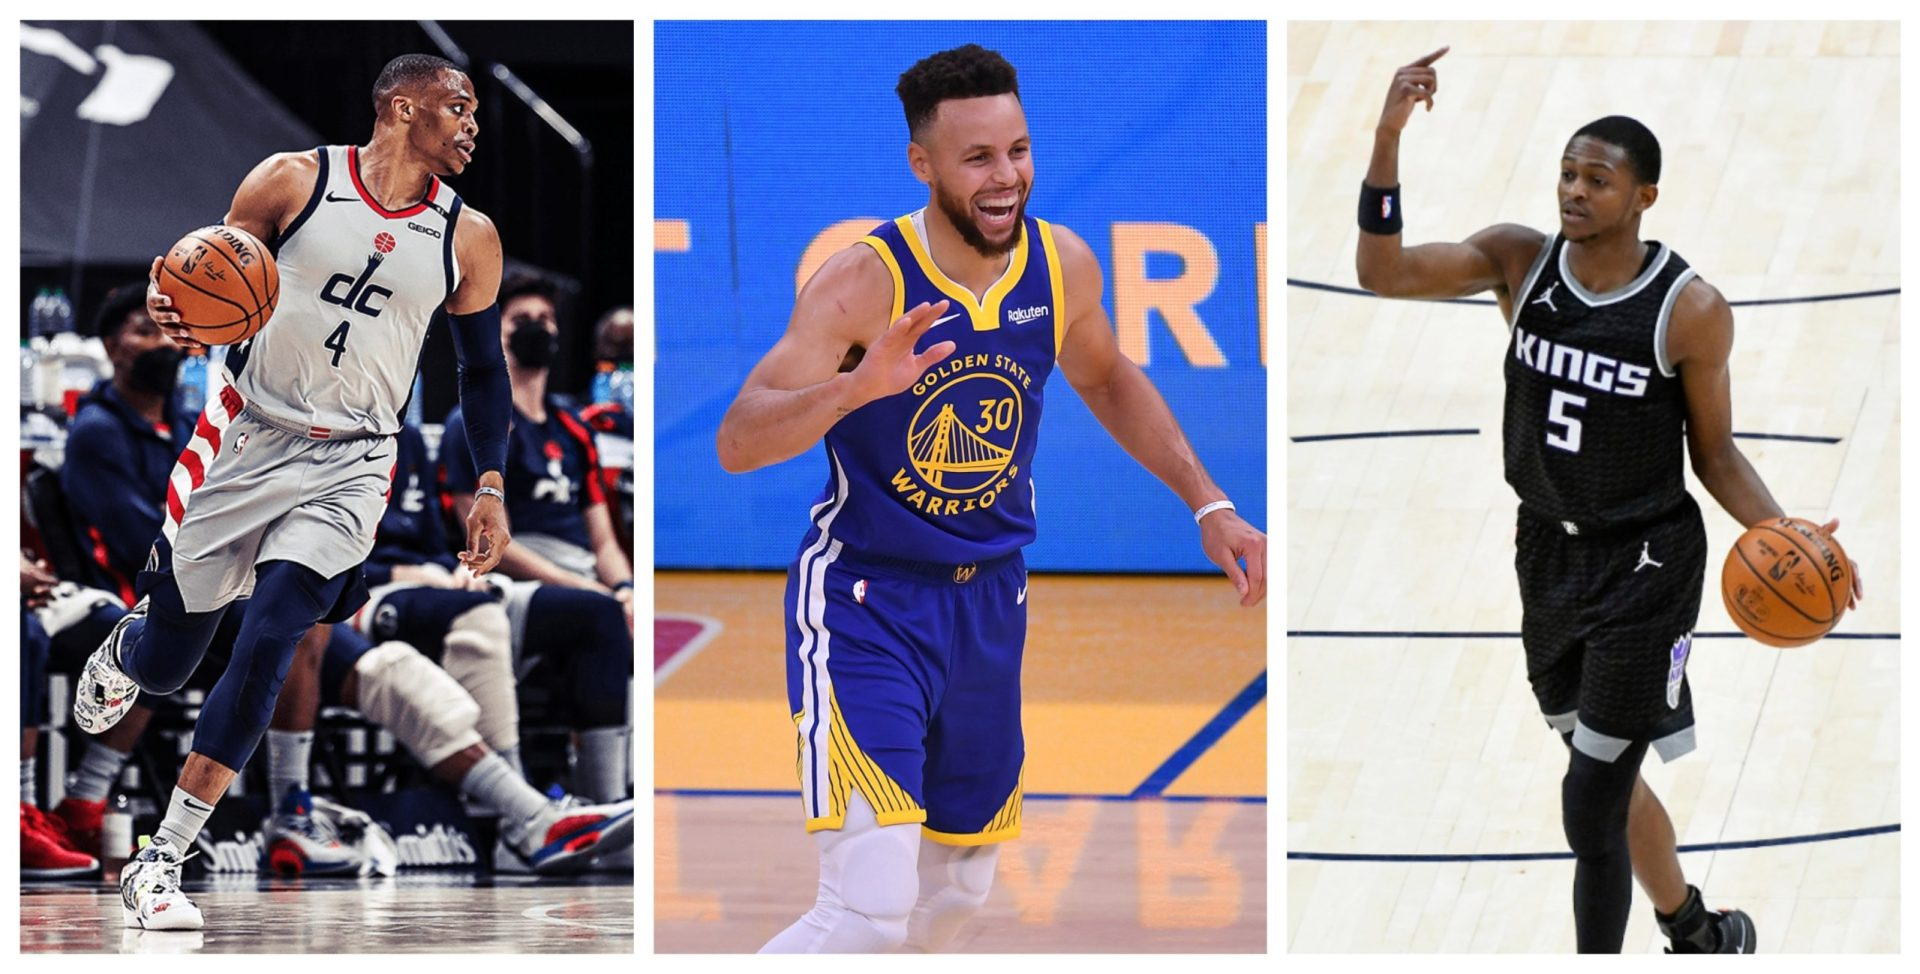 NBA Week 17 April 12 Results: Scores, standings, match summary and highlights - THE SPORTS ROOM